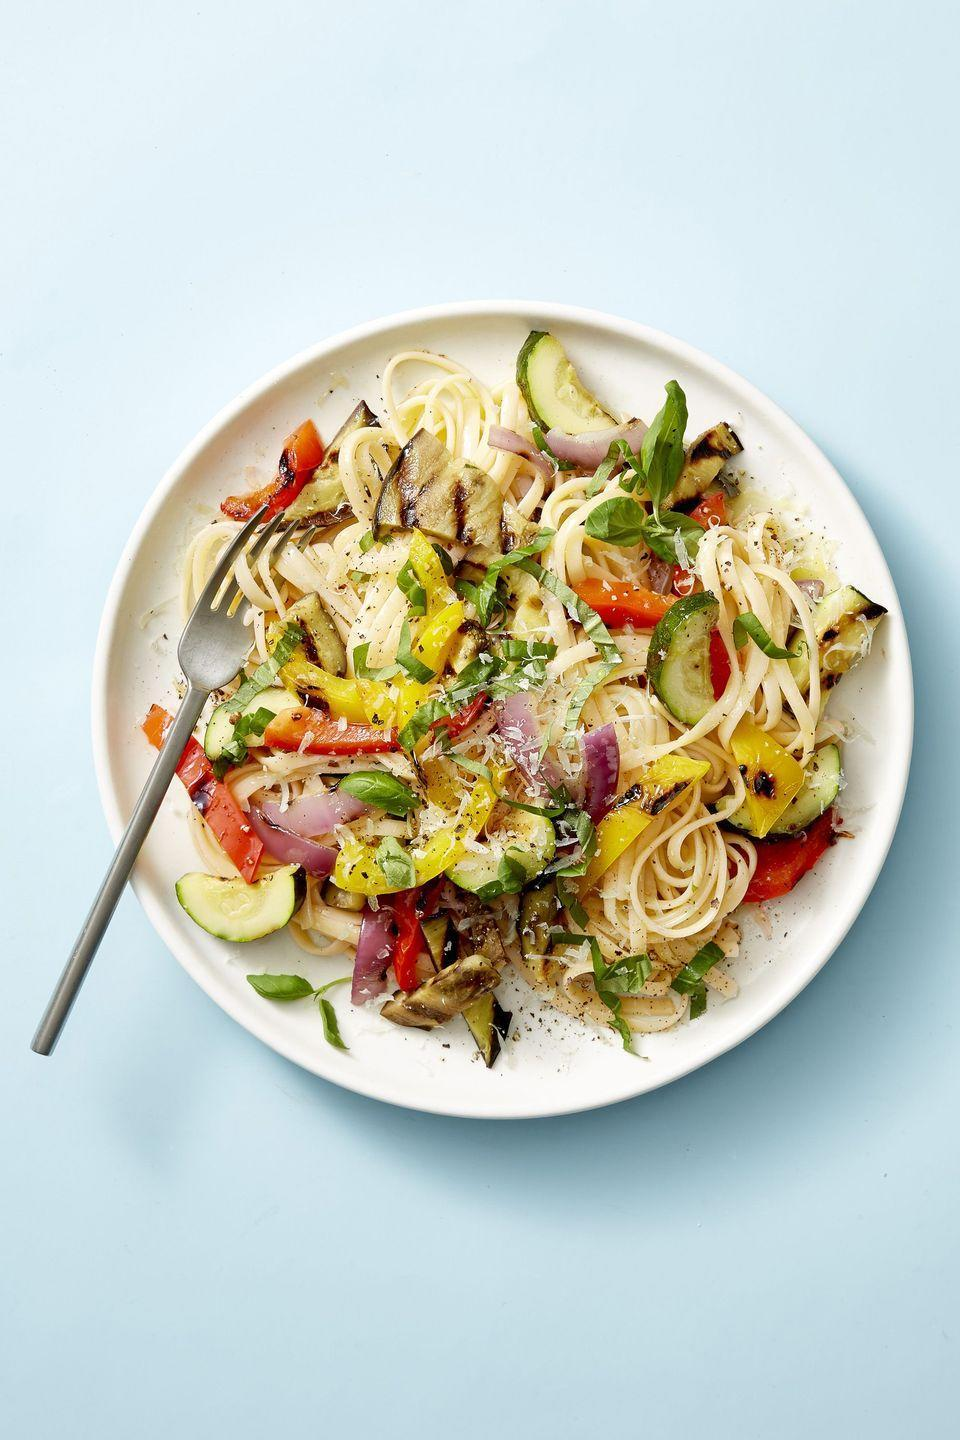 """<p>Lighten up your plate of pasta by going 50/50 with medley of grilled veggies. </p><p><em><a href=""""https://www.goodhousekeeping.com/food-recipes/easy/a21601536/grilled-ratatouille-linguine-recipe/"""" rel=""""nofollow noopener"""" target=""""_blank"""" data-ylk=""""slk:Get the recipe for Grilled Ratatouille Linguine »"""" class=""""link rapid-noclick-resp"""">Get the recipe for Grilled Ratatouille Linguine »</a></em></p><p><strong>RELATED: </strong><a href=""""https://www.goodhousekeeping.com/food-recipes/cooking/tips/g241/grilling-vegetables-guide/"""" rel=""""nofollow noopener"""" target=""""_blank"""" data-ylk=""""slk:18 Grilled Vegetable Recipes That Belong at Every BBQ"""" class=""""link rapid-noclick-resp"""">18 Grilled Vegetable Recipes That Belong at Every BBQ</a><br></p>"""